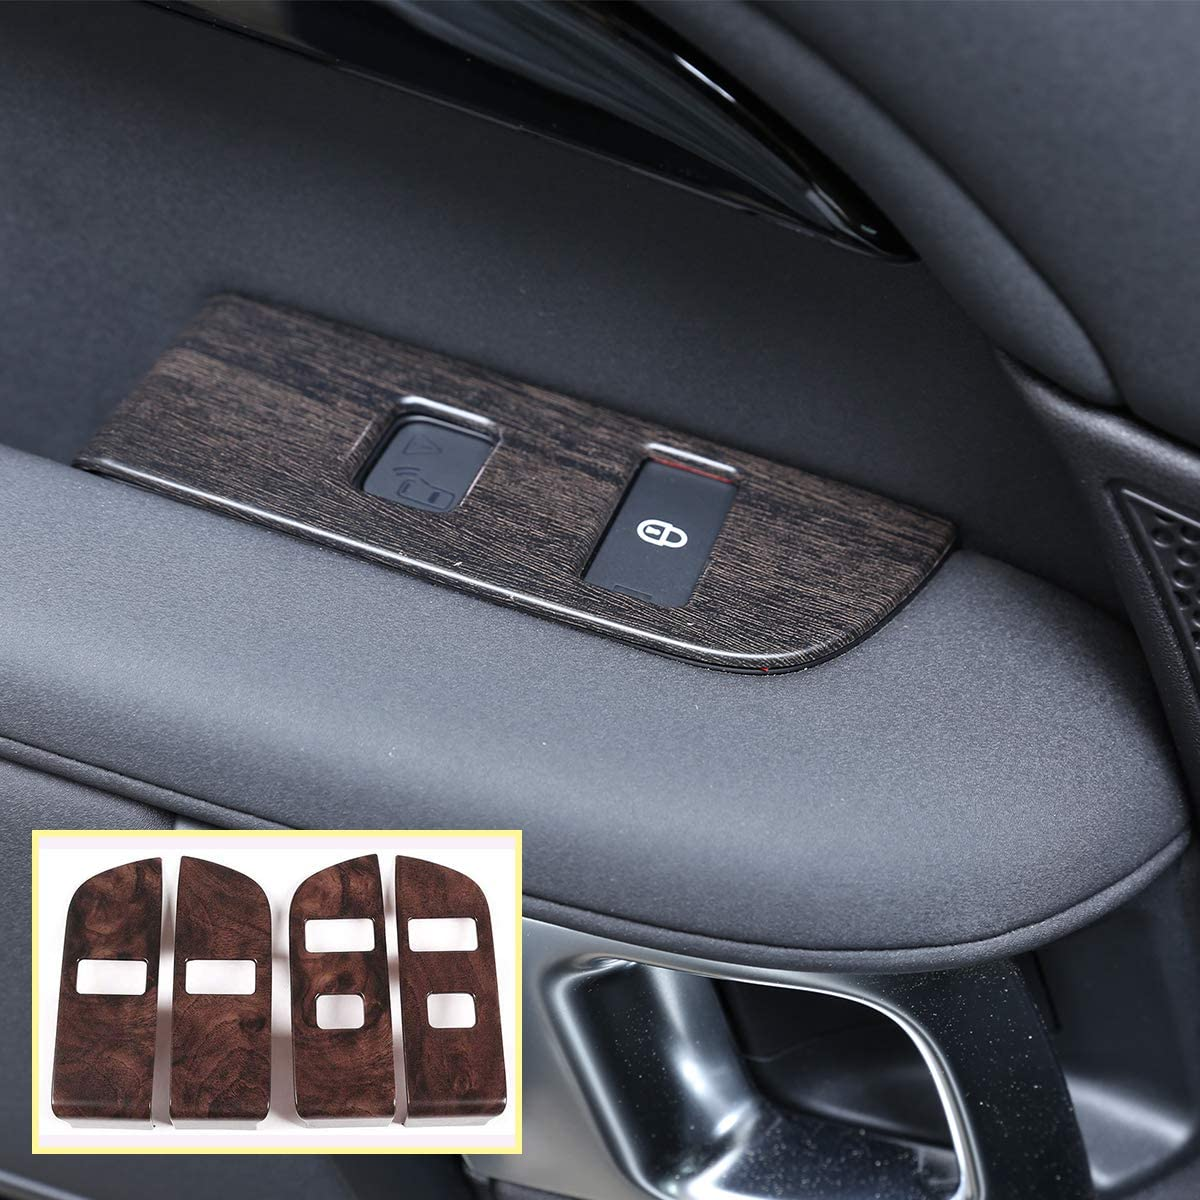 Oak Wood Grain ABS For Land Rover Discovery 5 LR5 L462 2019 (LHD) Accessories Interior Child Lock Button Trim With Opening Warning 4pcs (Low configuration)